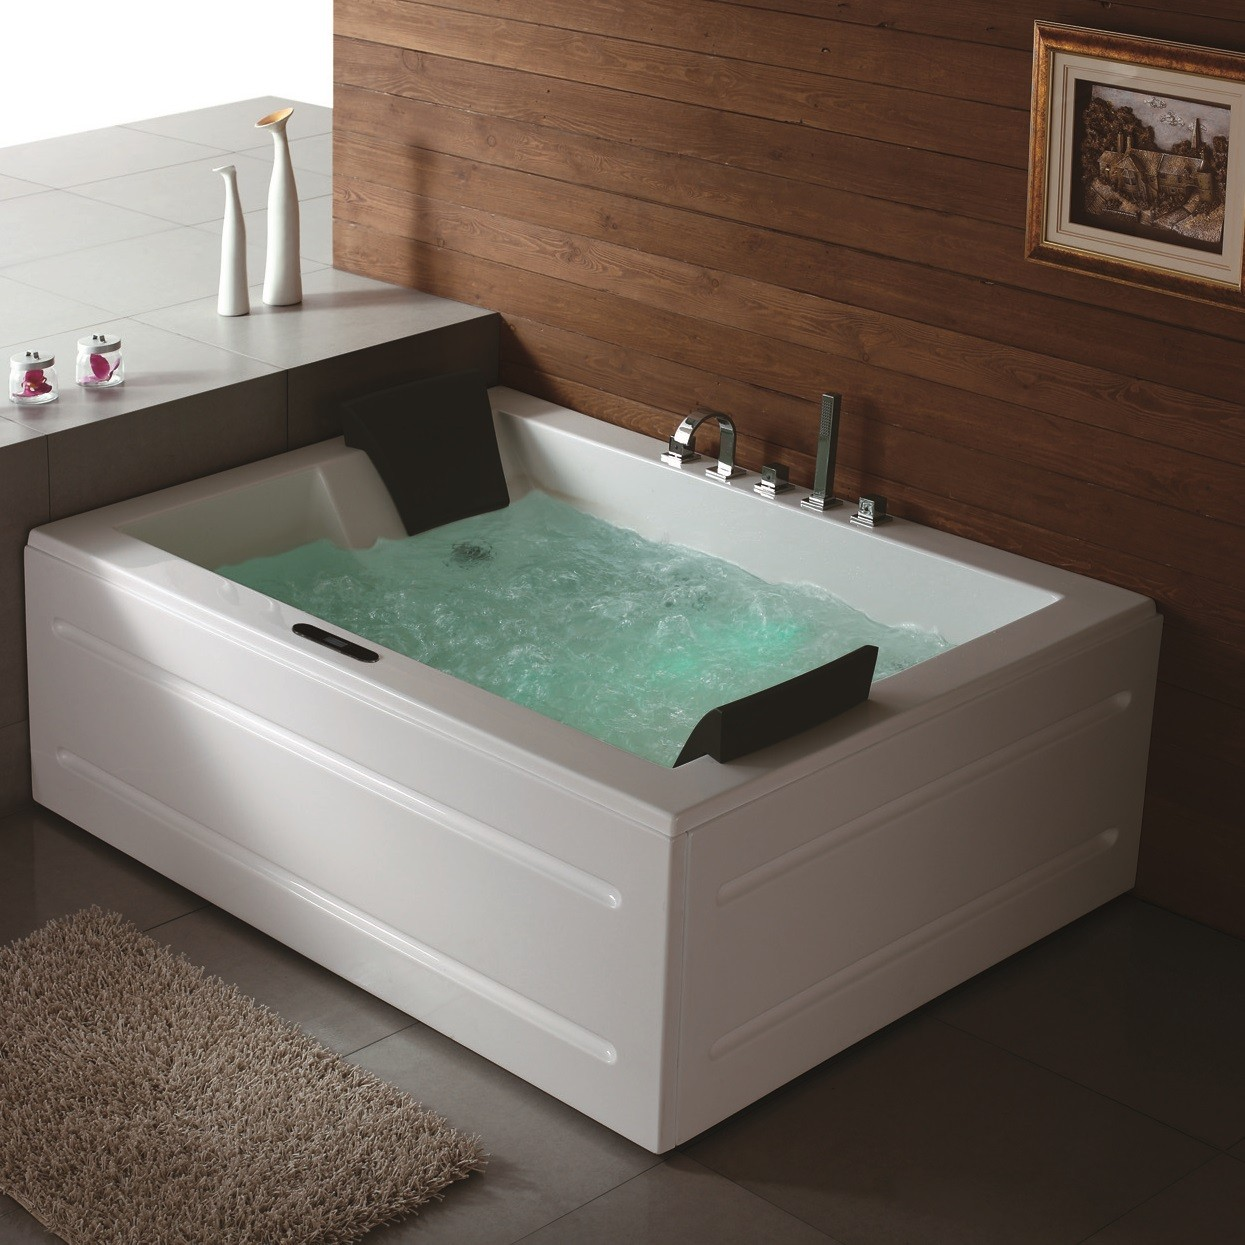 Bathroom Jet Tubs luxury whirlpool tub